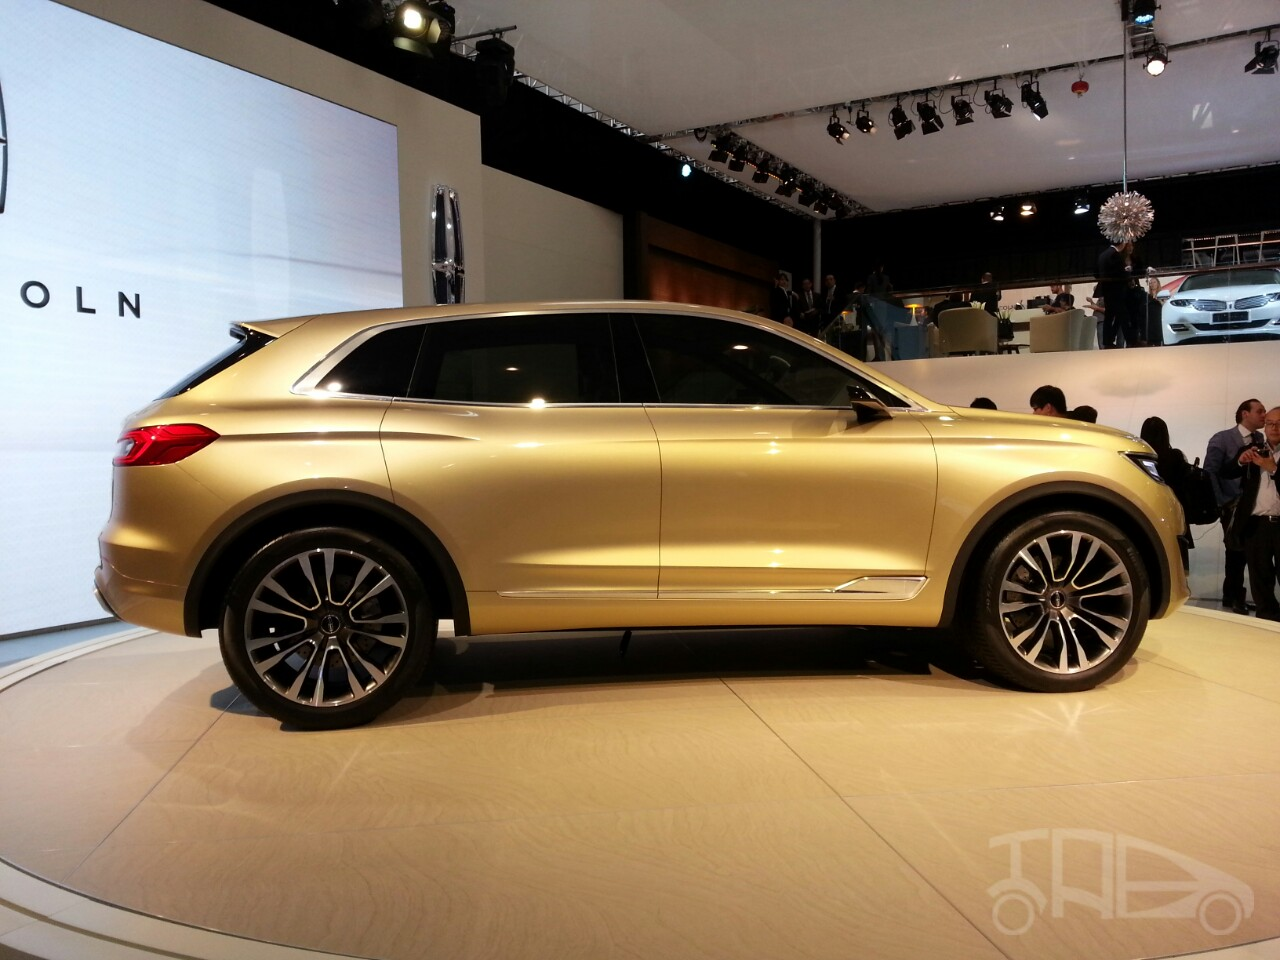 https://img.indianautosblog.com/2014/04/Lincoln-MKX-Concept-profile-at-Auto-China-2014.jpg